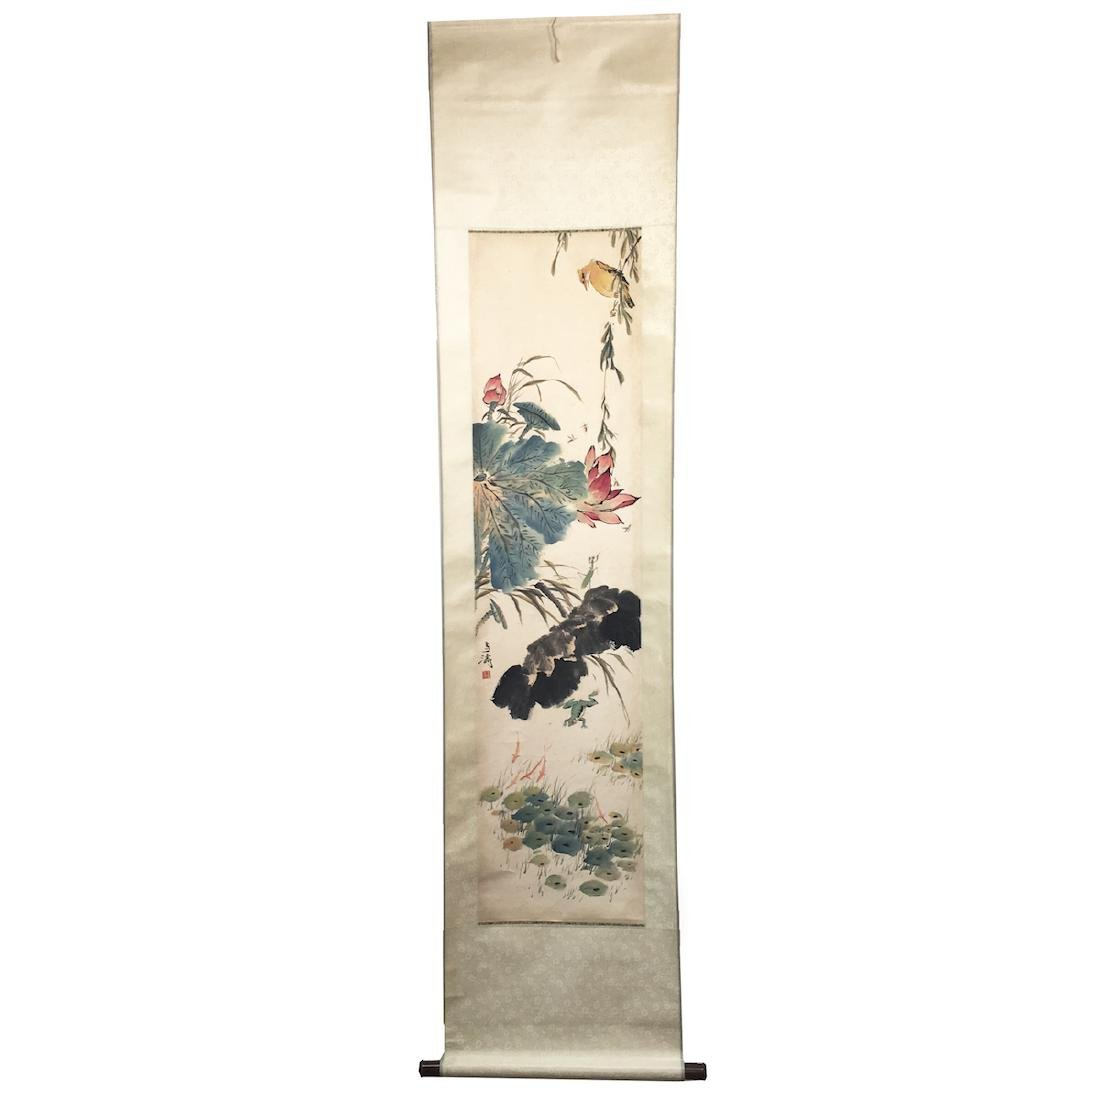 A Chinese Painting Scroll with Birds